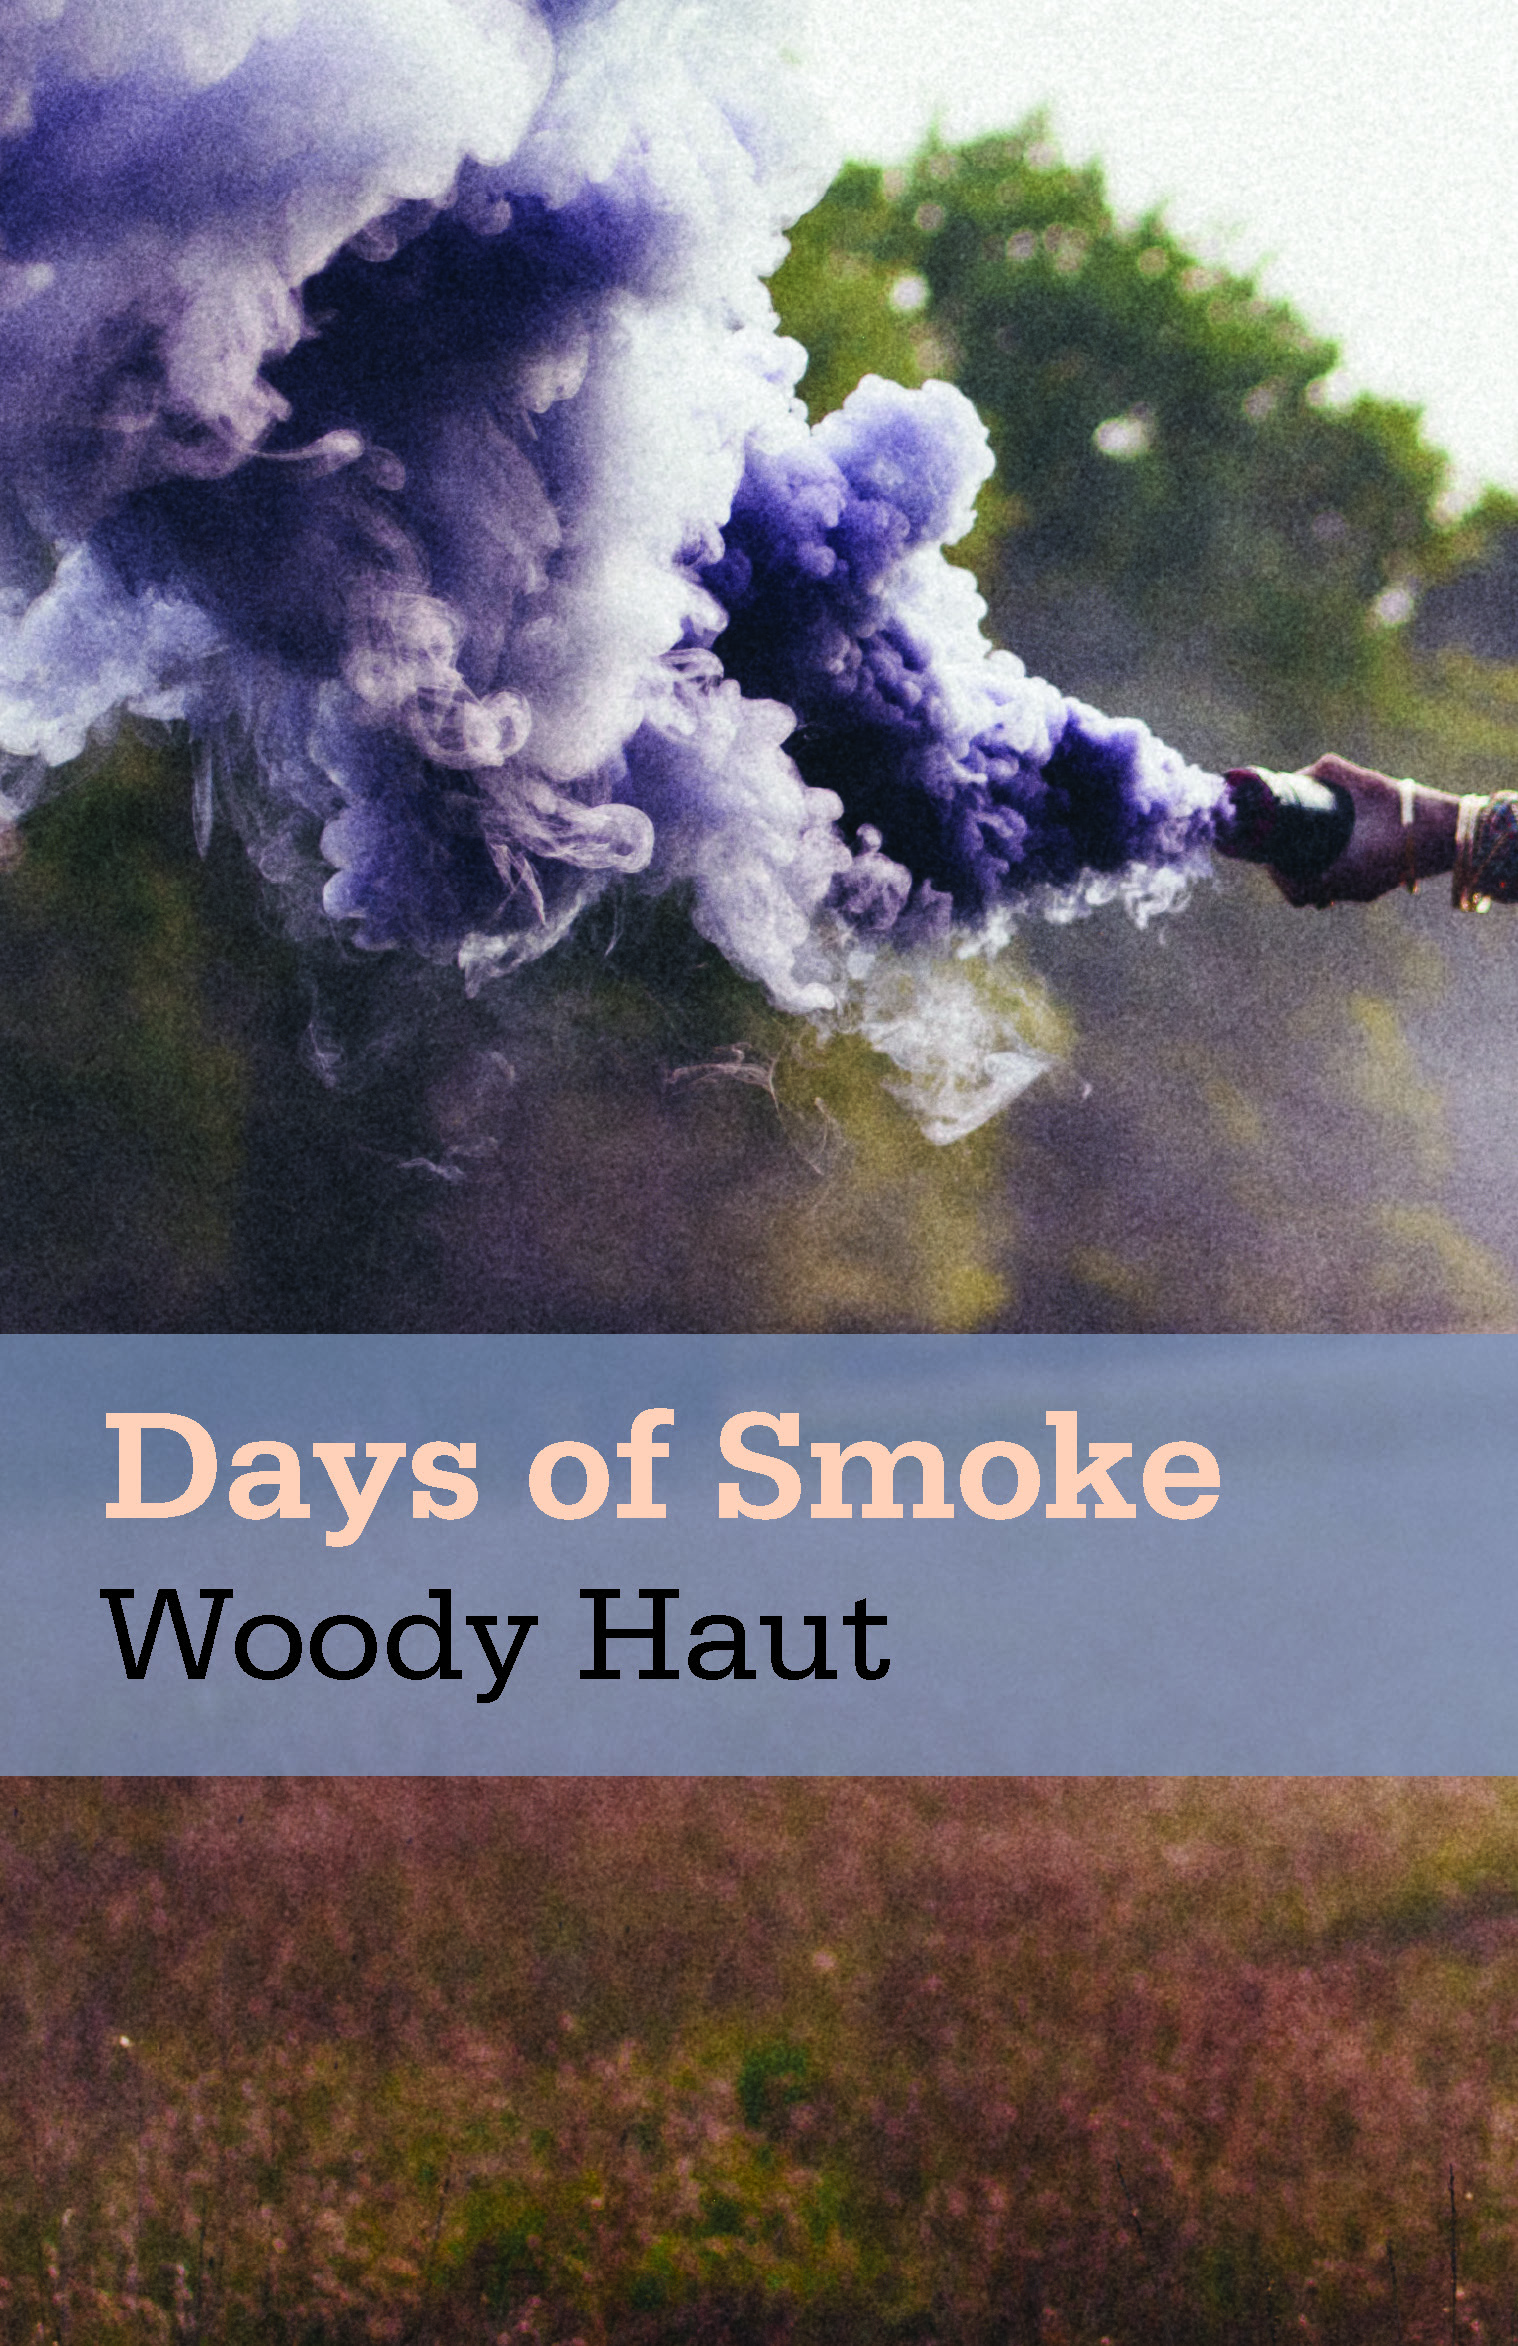 Days of Smoke by Woody Haut